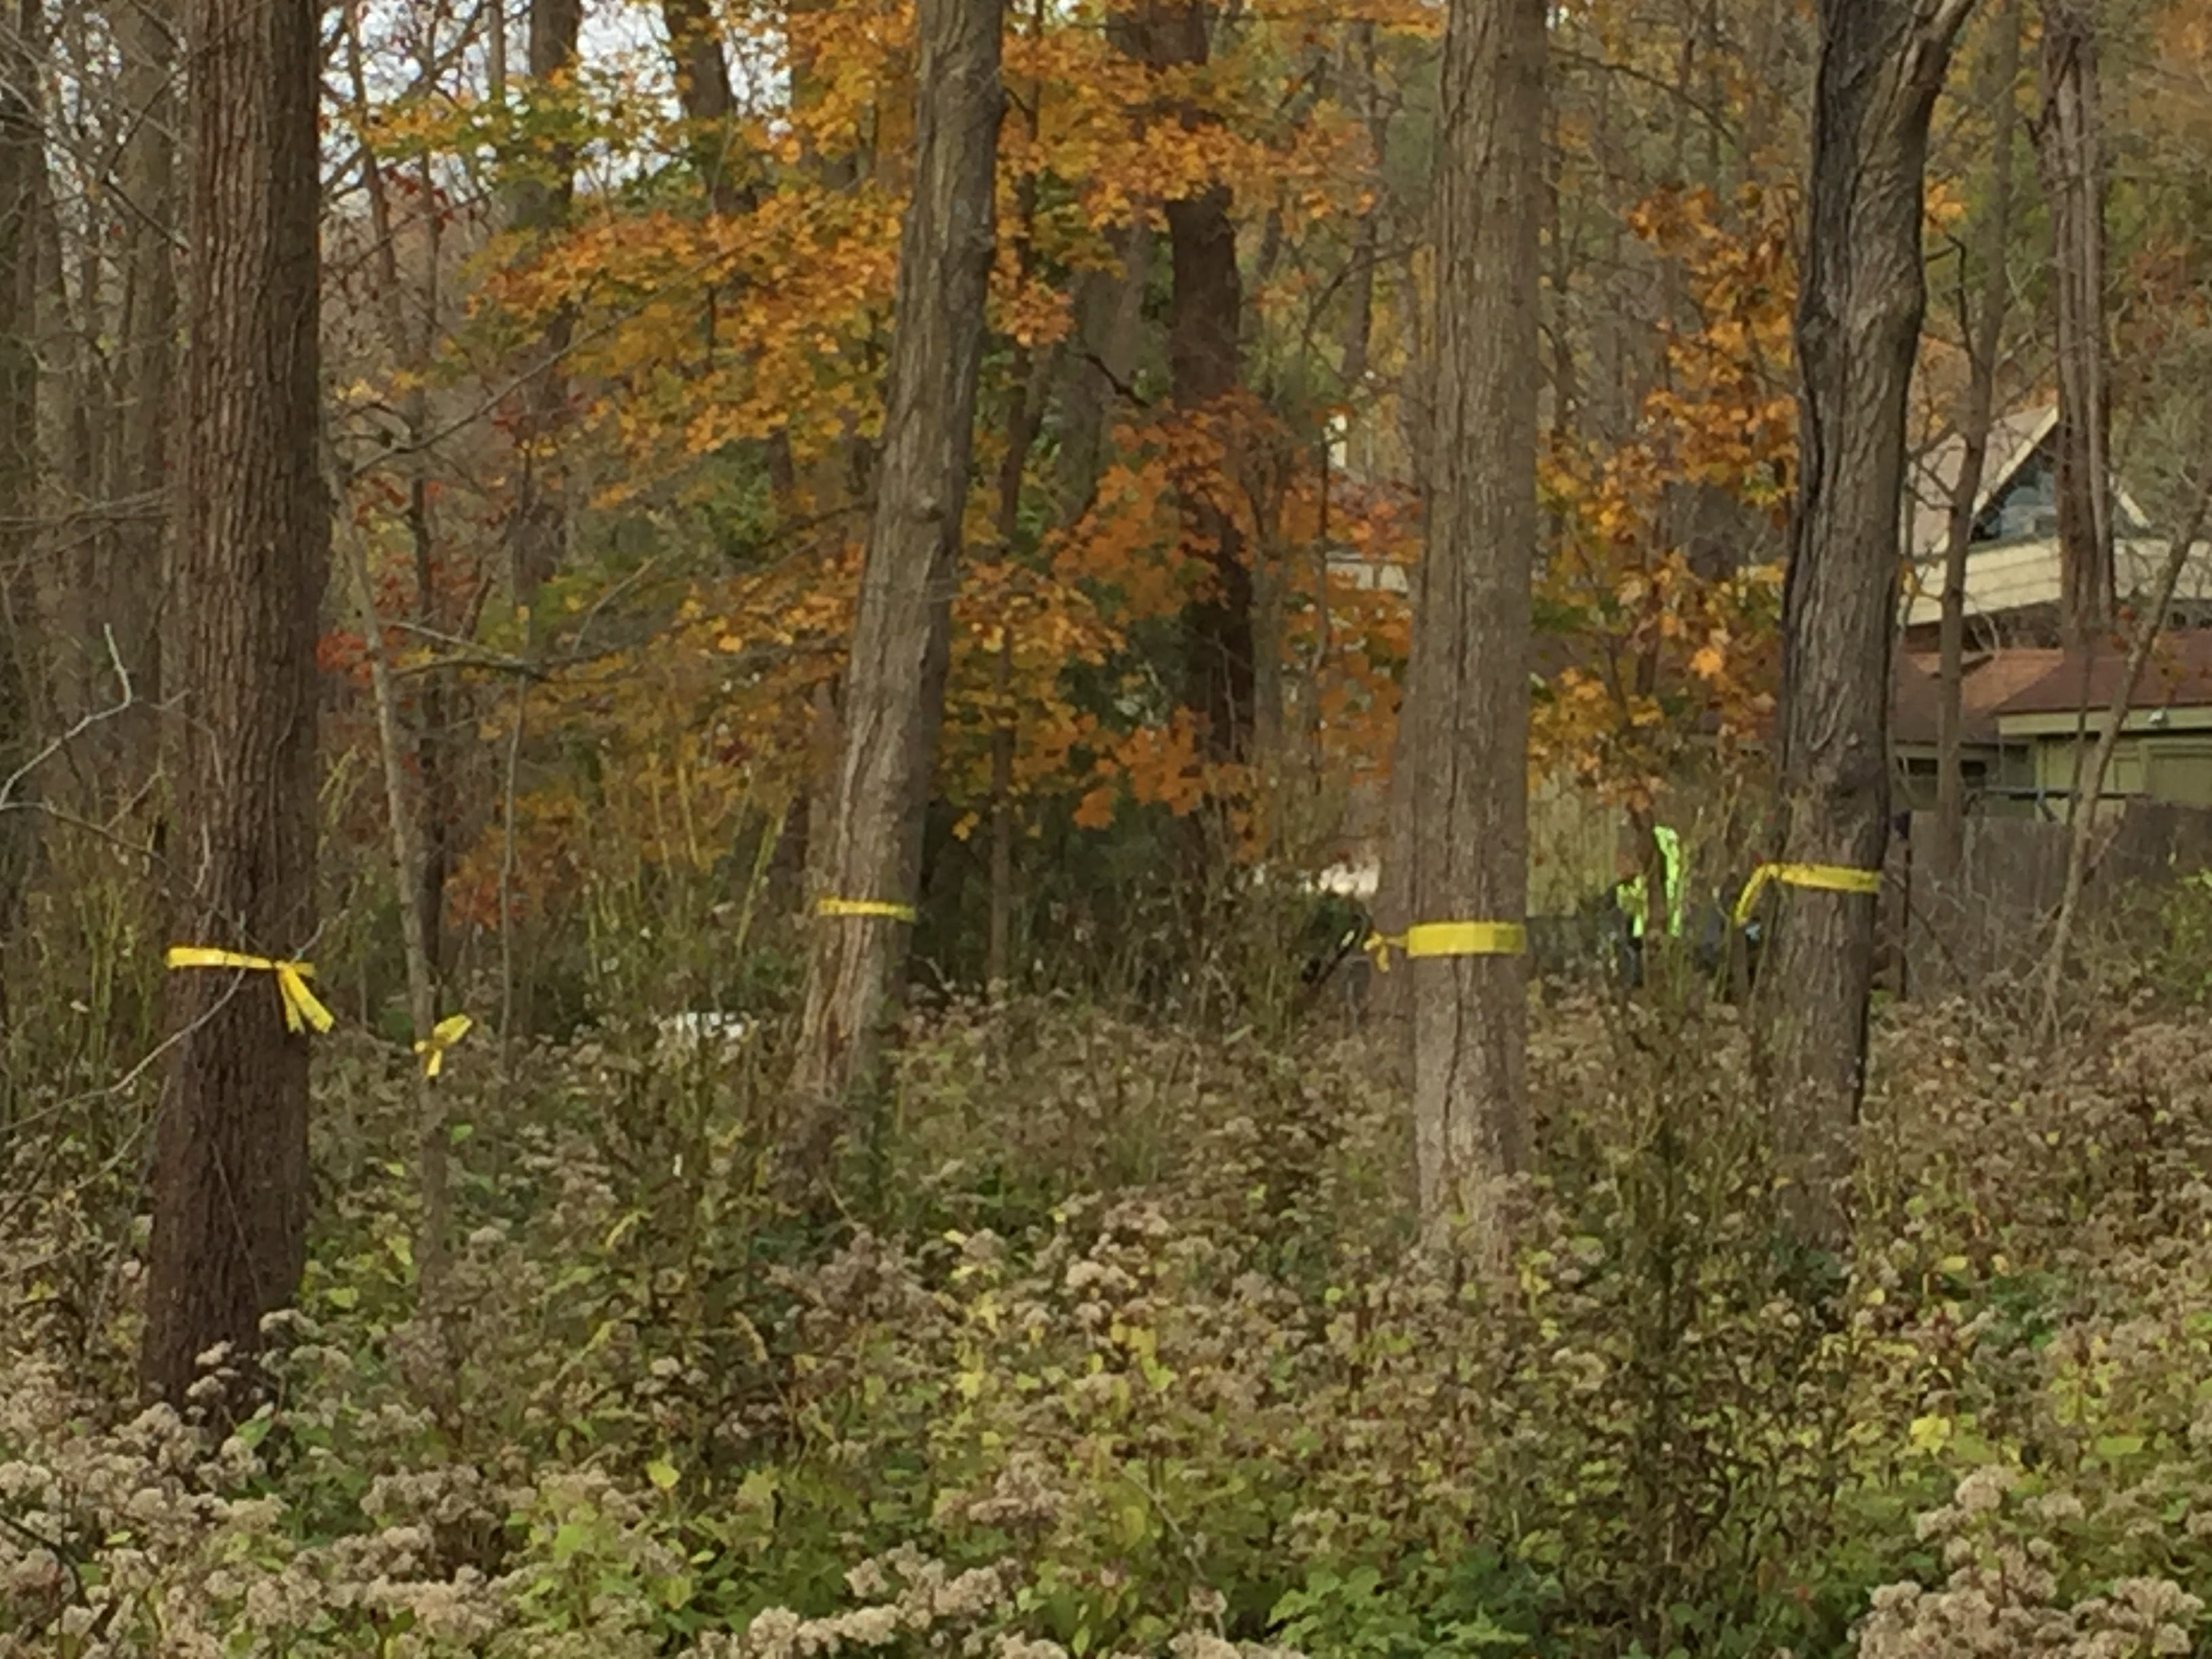 Mature hardwood trees at Wehr Nature Center unintentionally killed by misuse of herbicide in 2017 are marked for logging this winter.